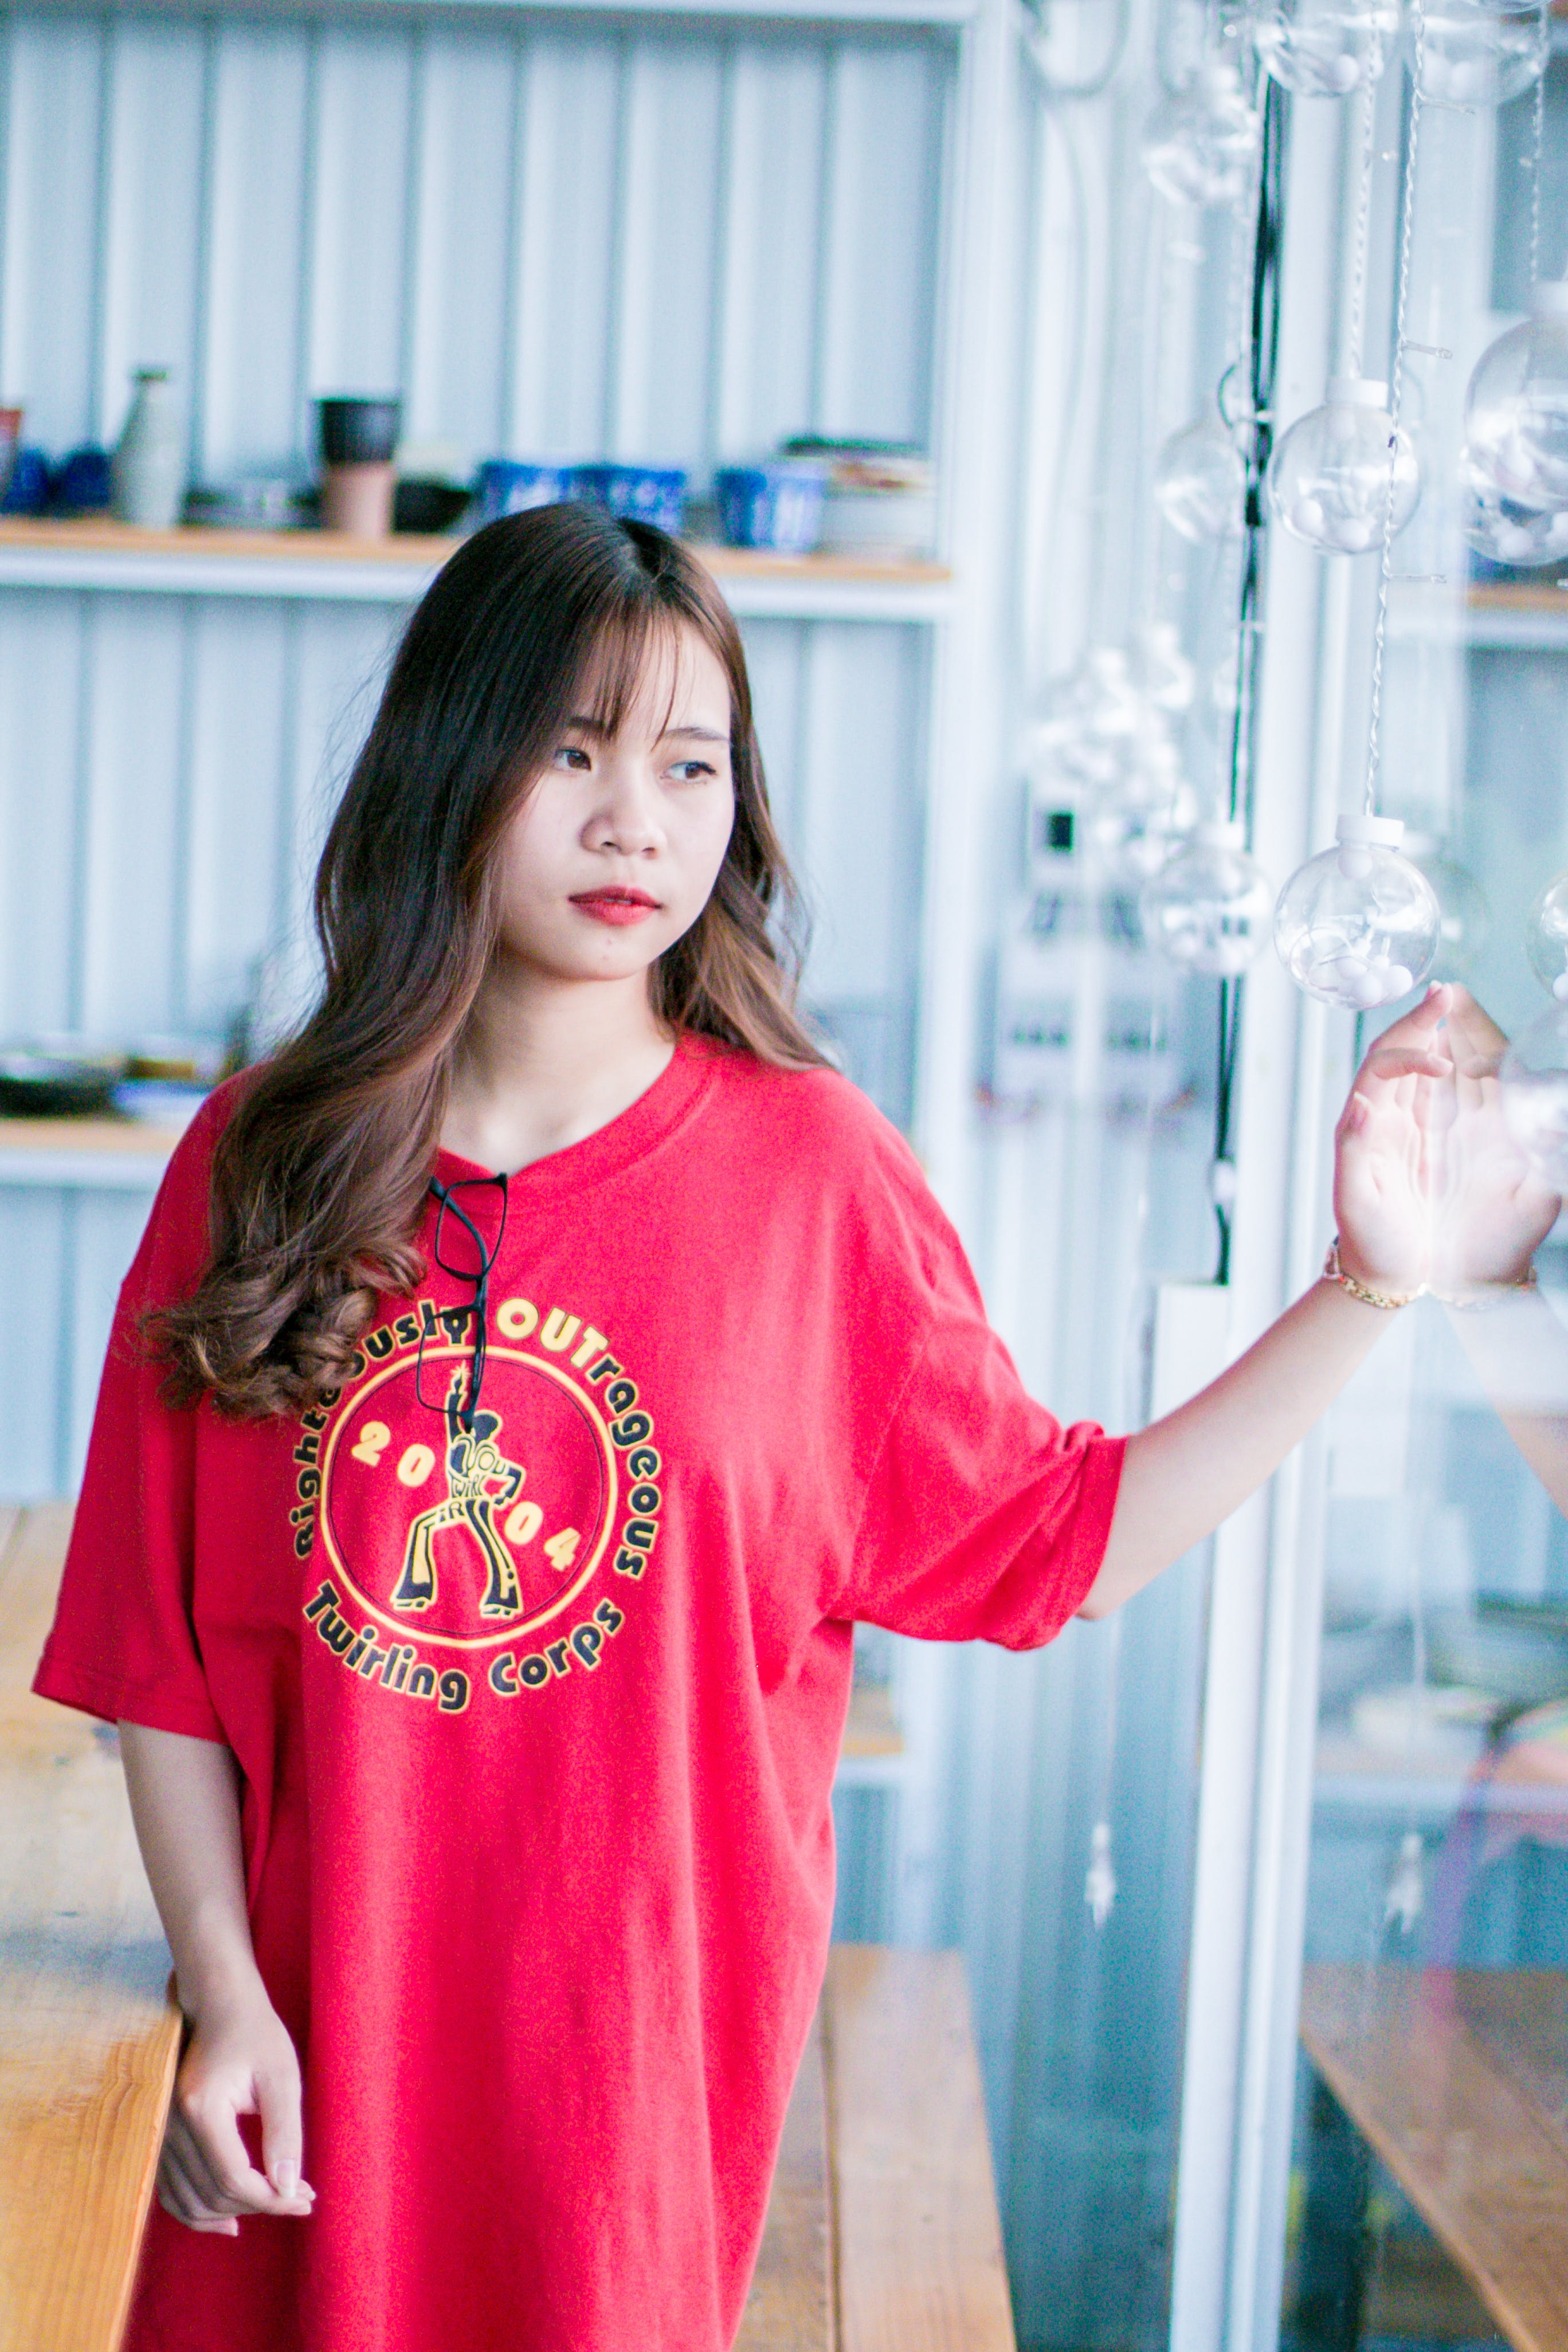 Woman Wearing Red Shirt Standing Near Glass Hanging Decor